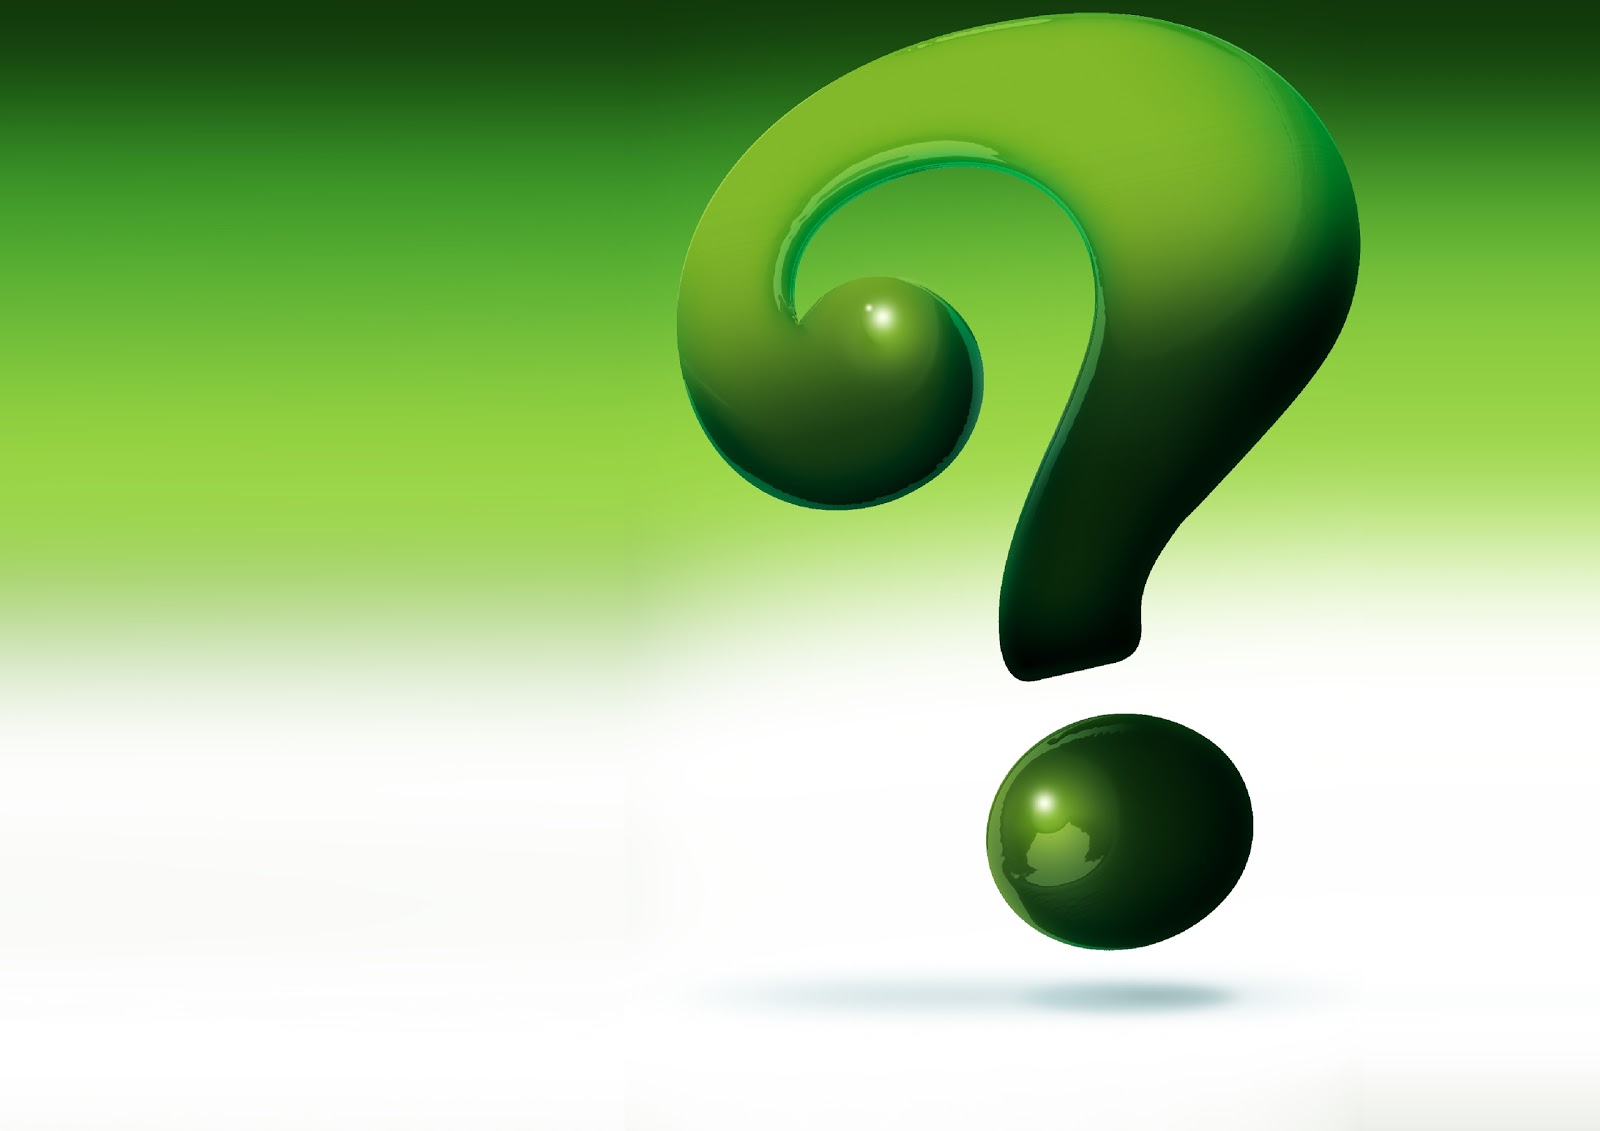 royalty question marks background stock photo from shutterstock s